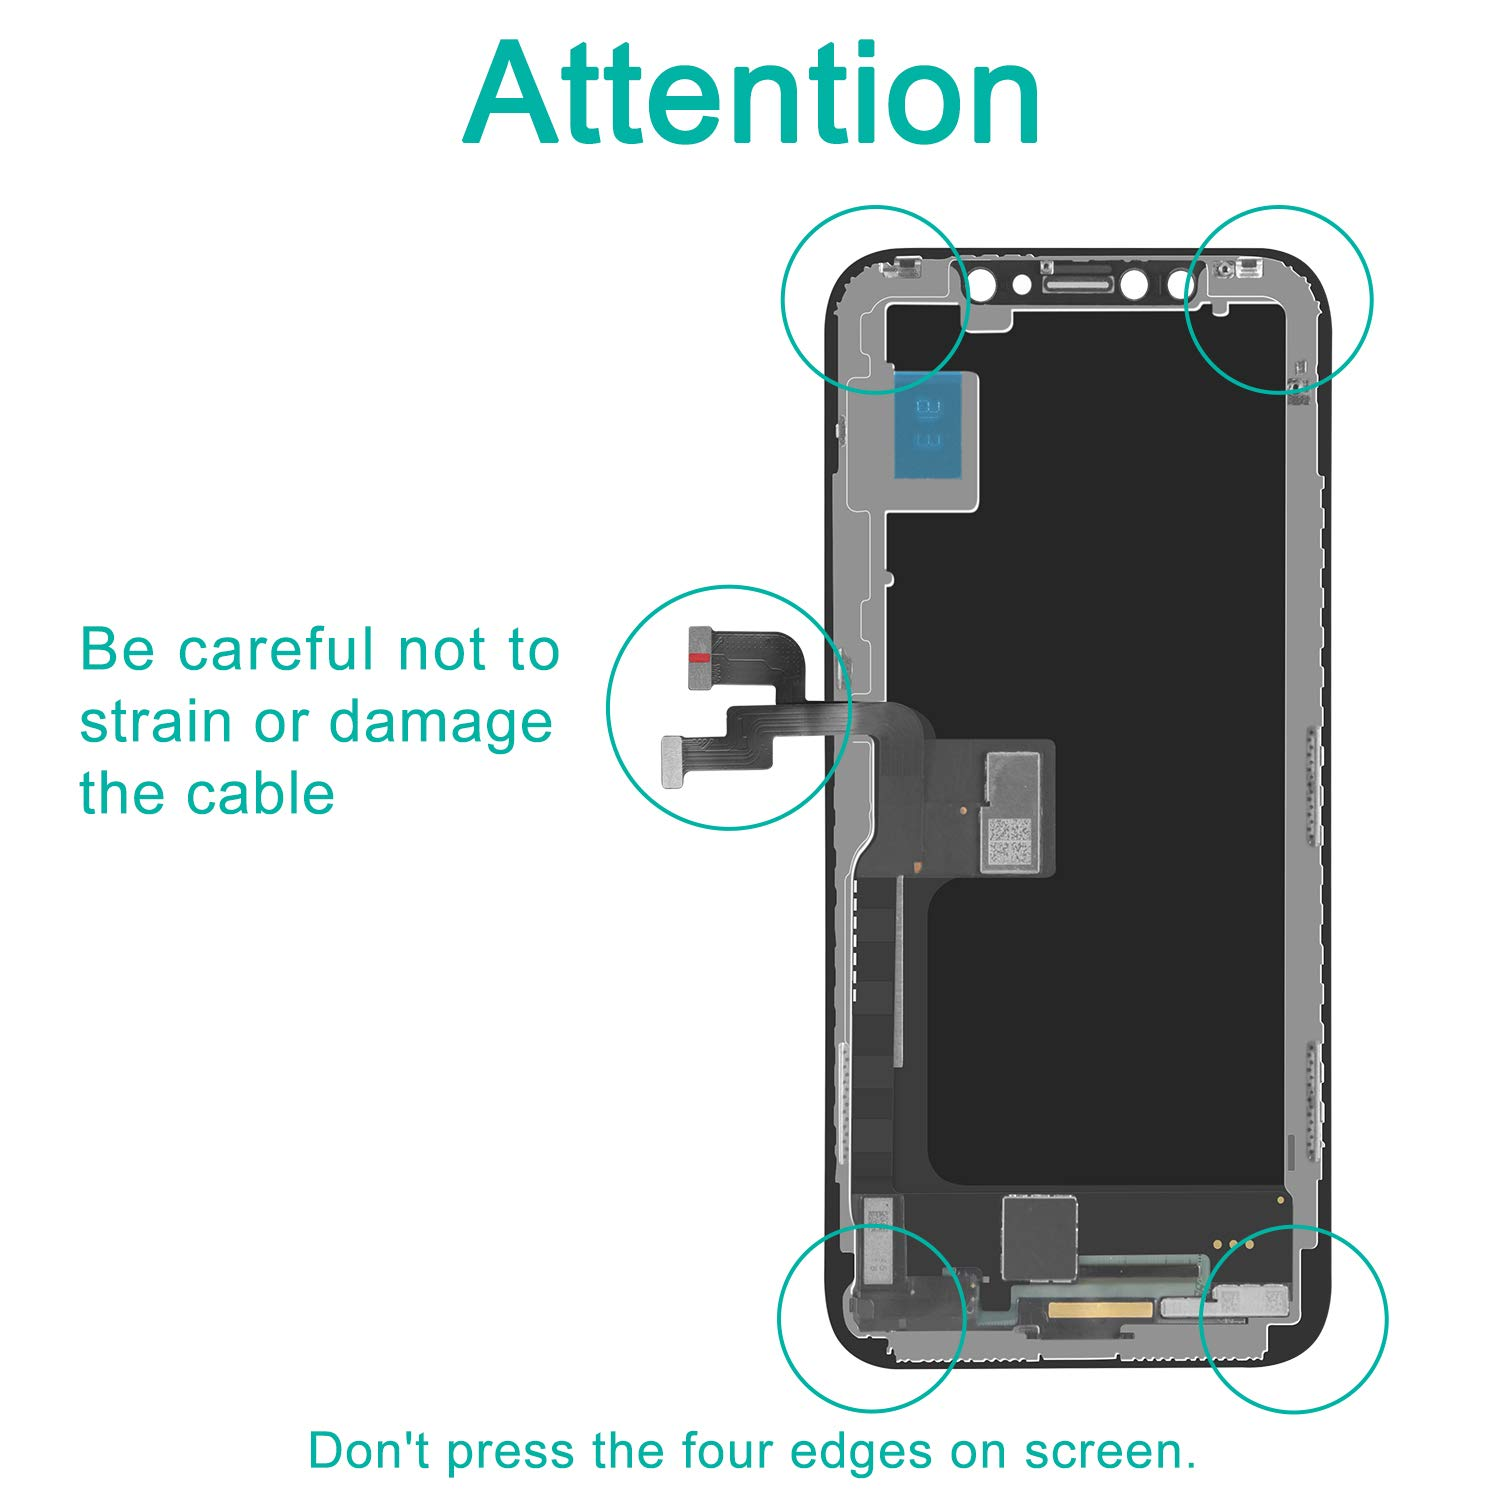 Display 3D Touch Digitizer Frame Assembly Full Repair Kit NOT LCD YPLANG Screen Replacement Compatible for iPhone X Screen Replacement Black OLED with Repair Tools